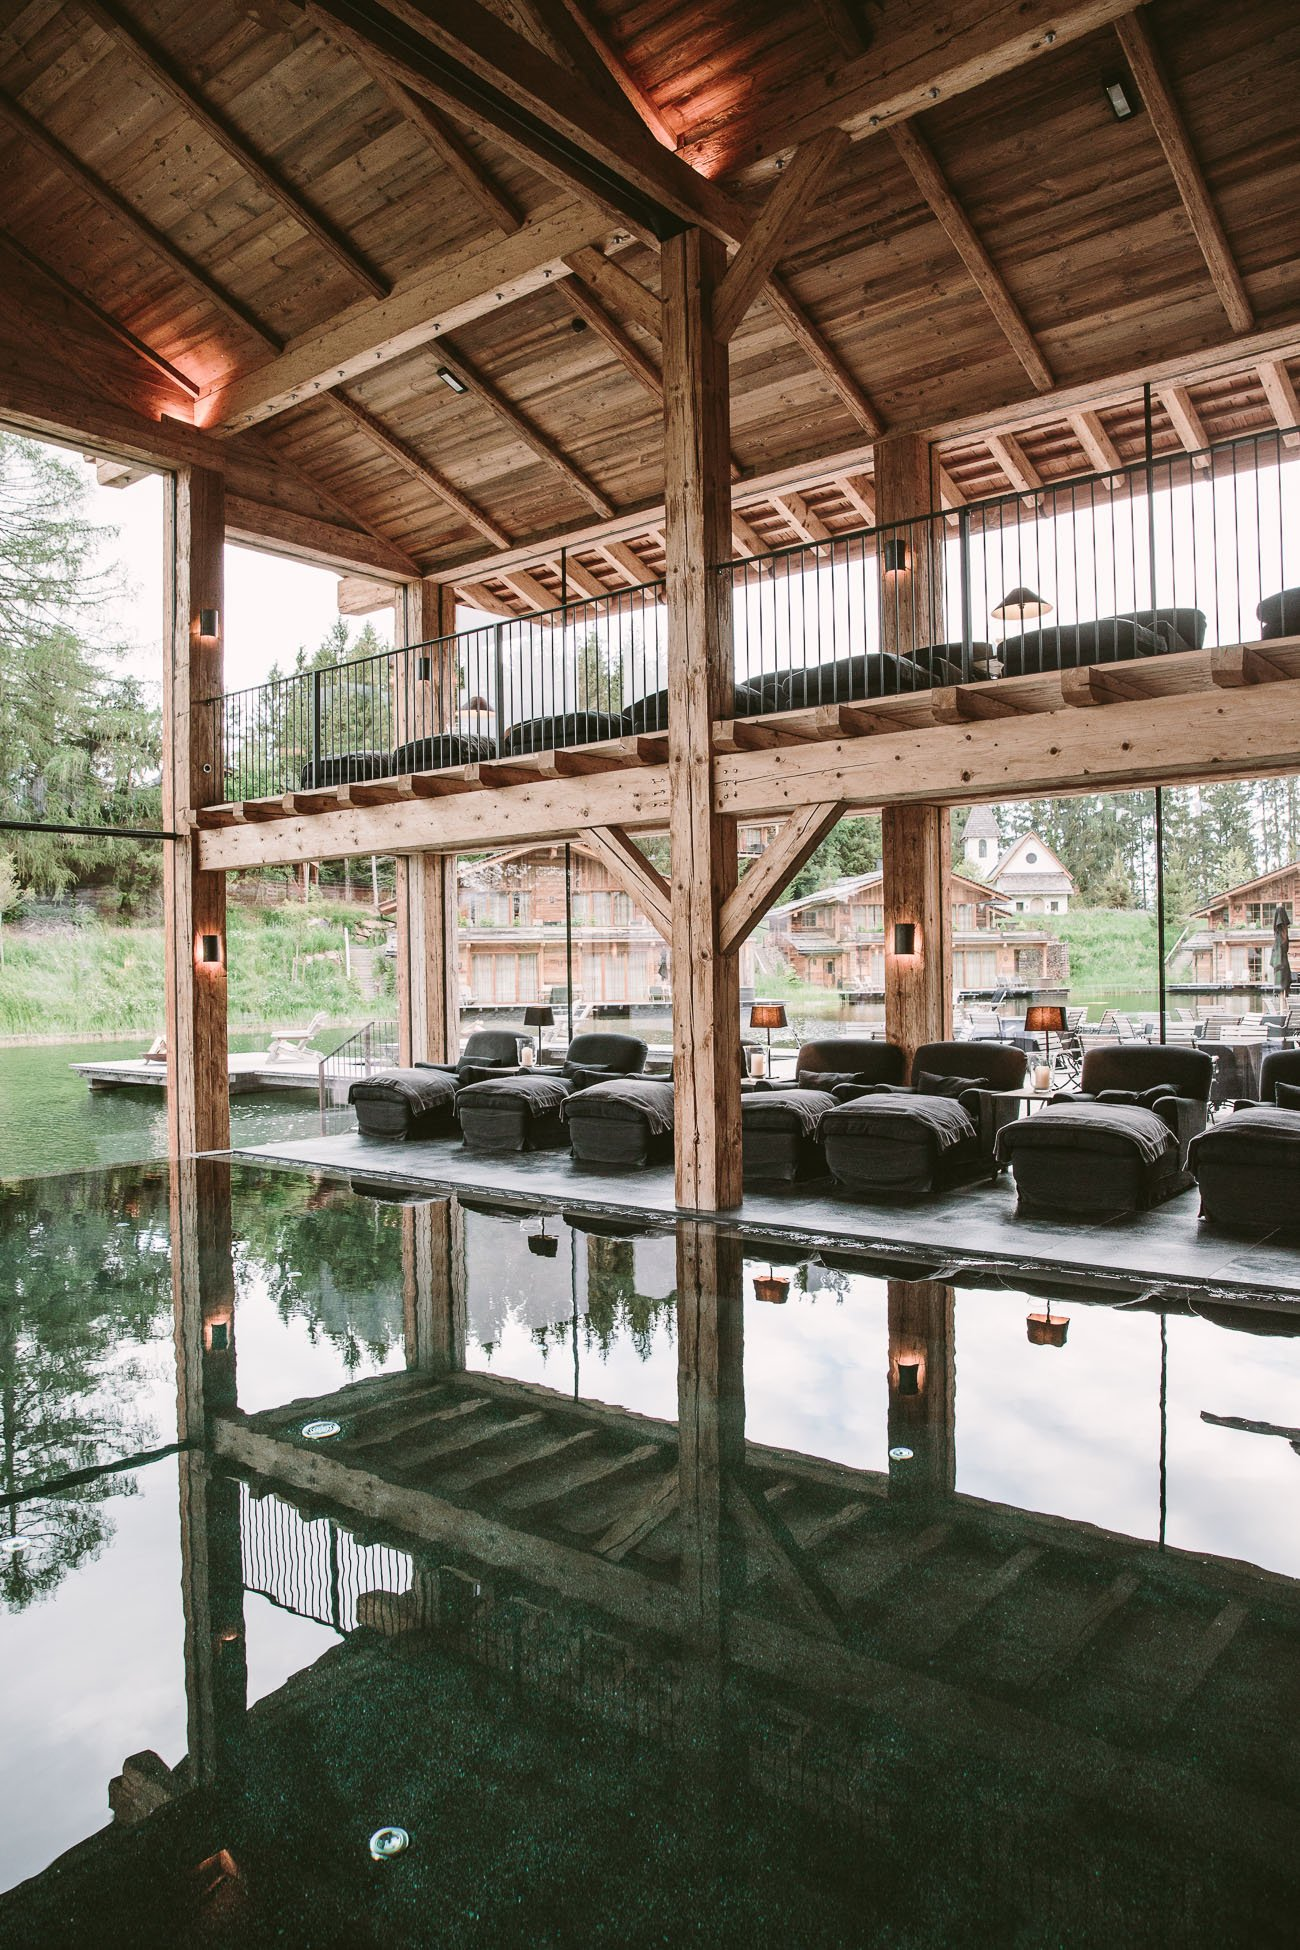 There's a small glass sliding door connecting the heated indoor with the heated outdoor infinity pool. So if you don't want to jump into the pond, you can also swim outside. The spa also features a huge fireplace and cozy lounge chairs - there's nothing to be missed here.